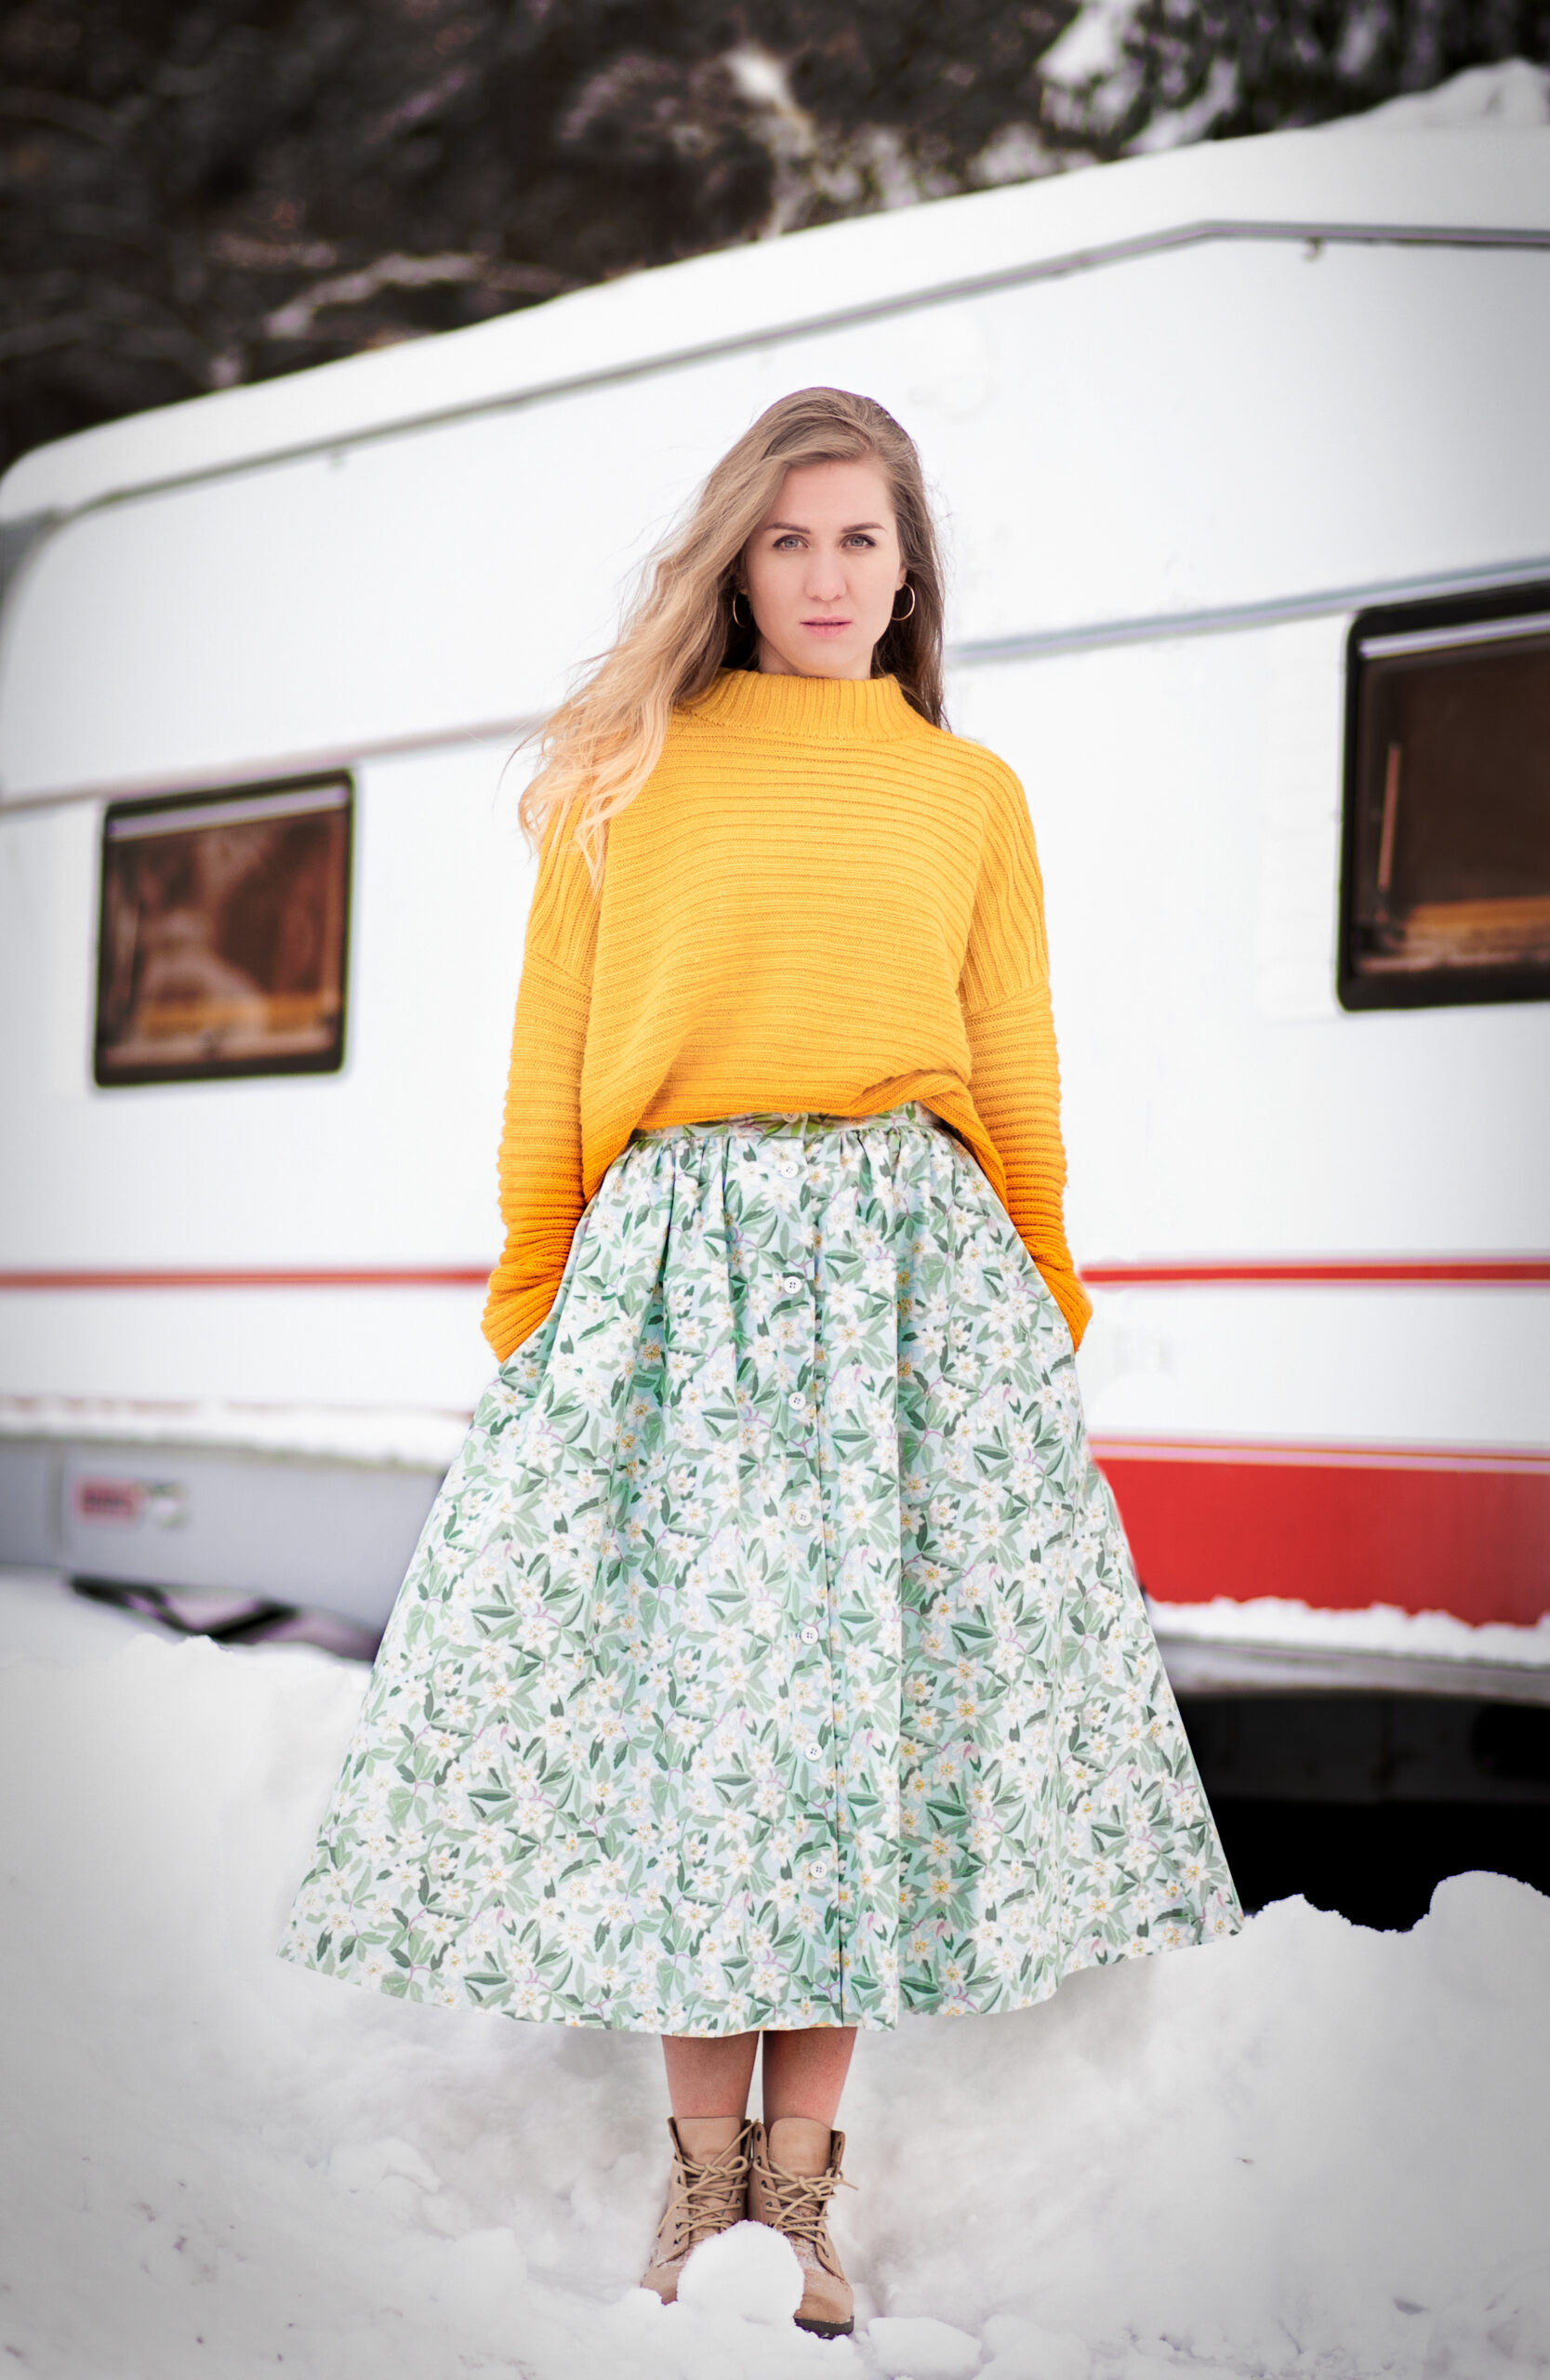 A winter session in yellow